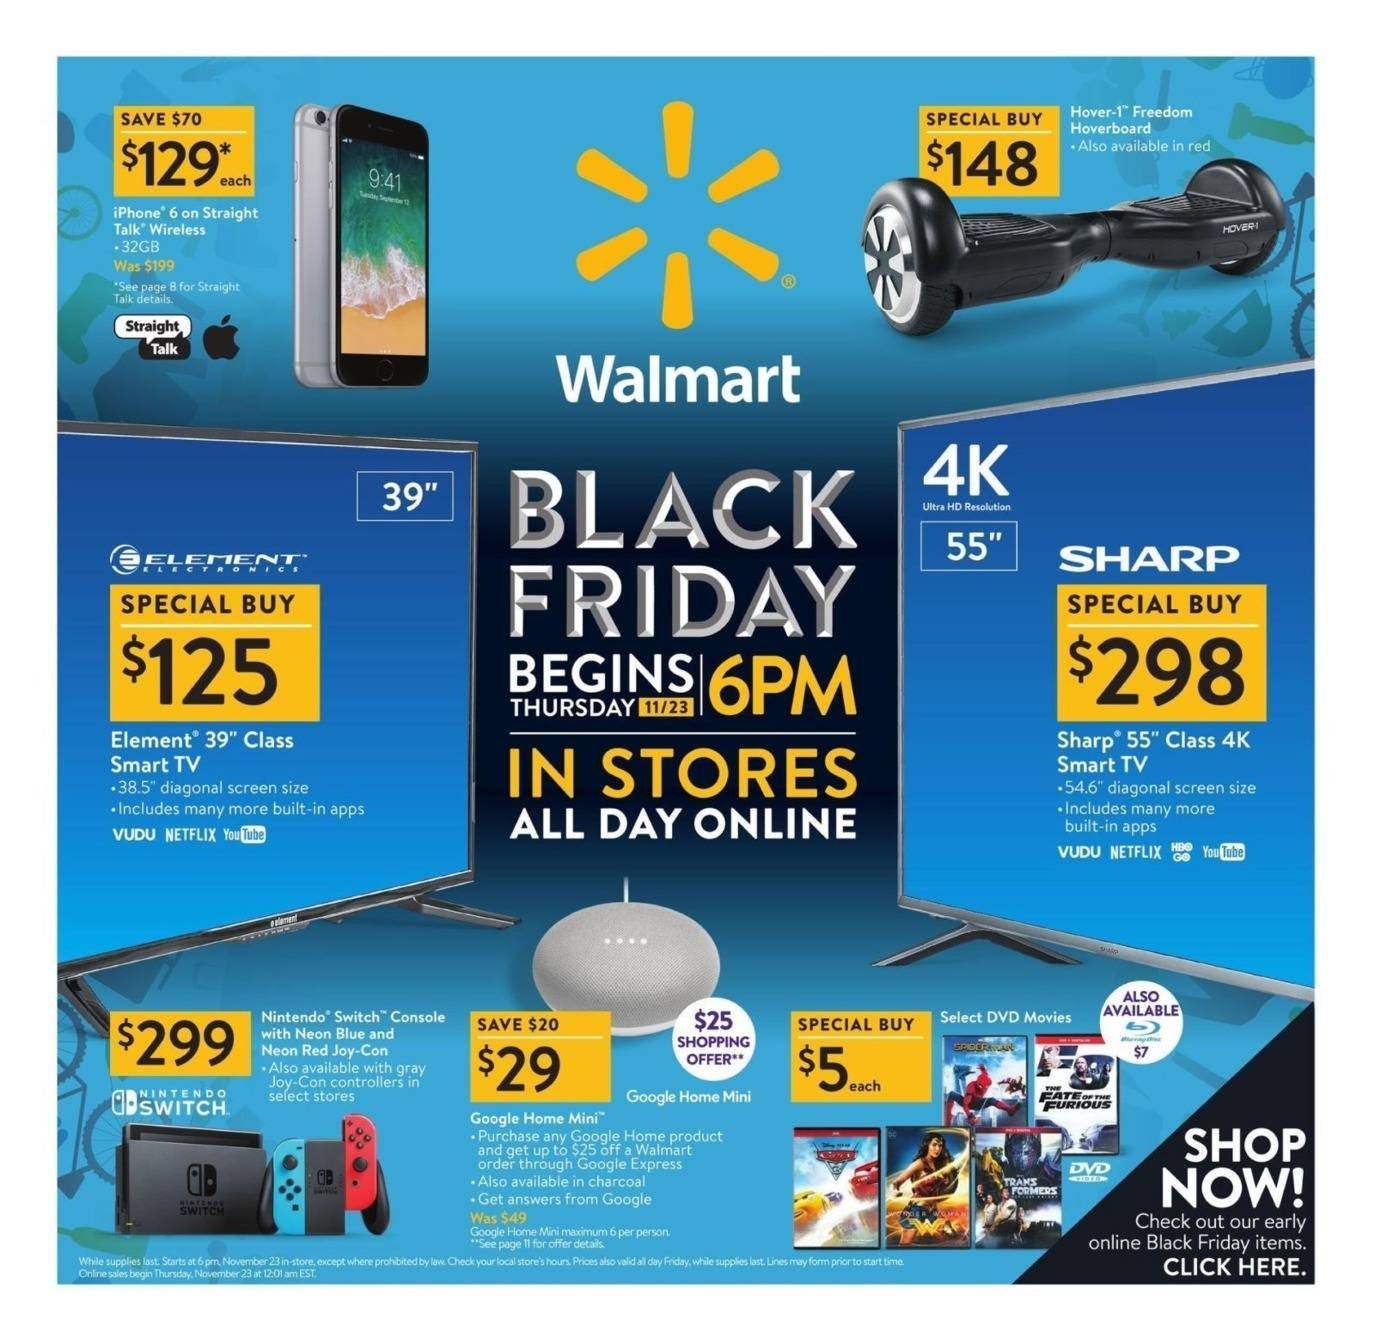 Back Friday Walmart 2017 Black Friday Ad